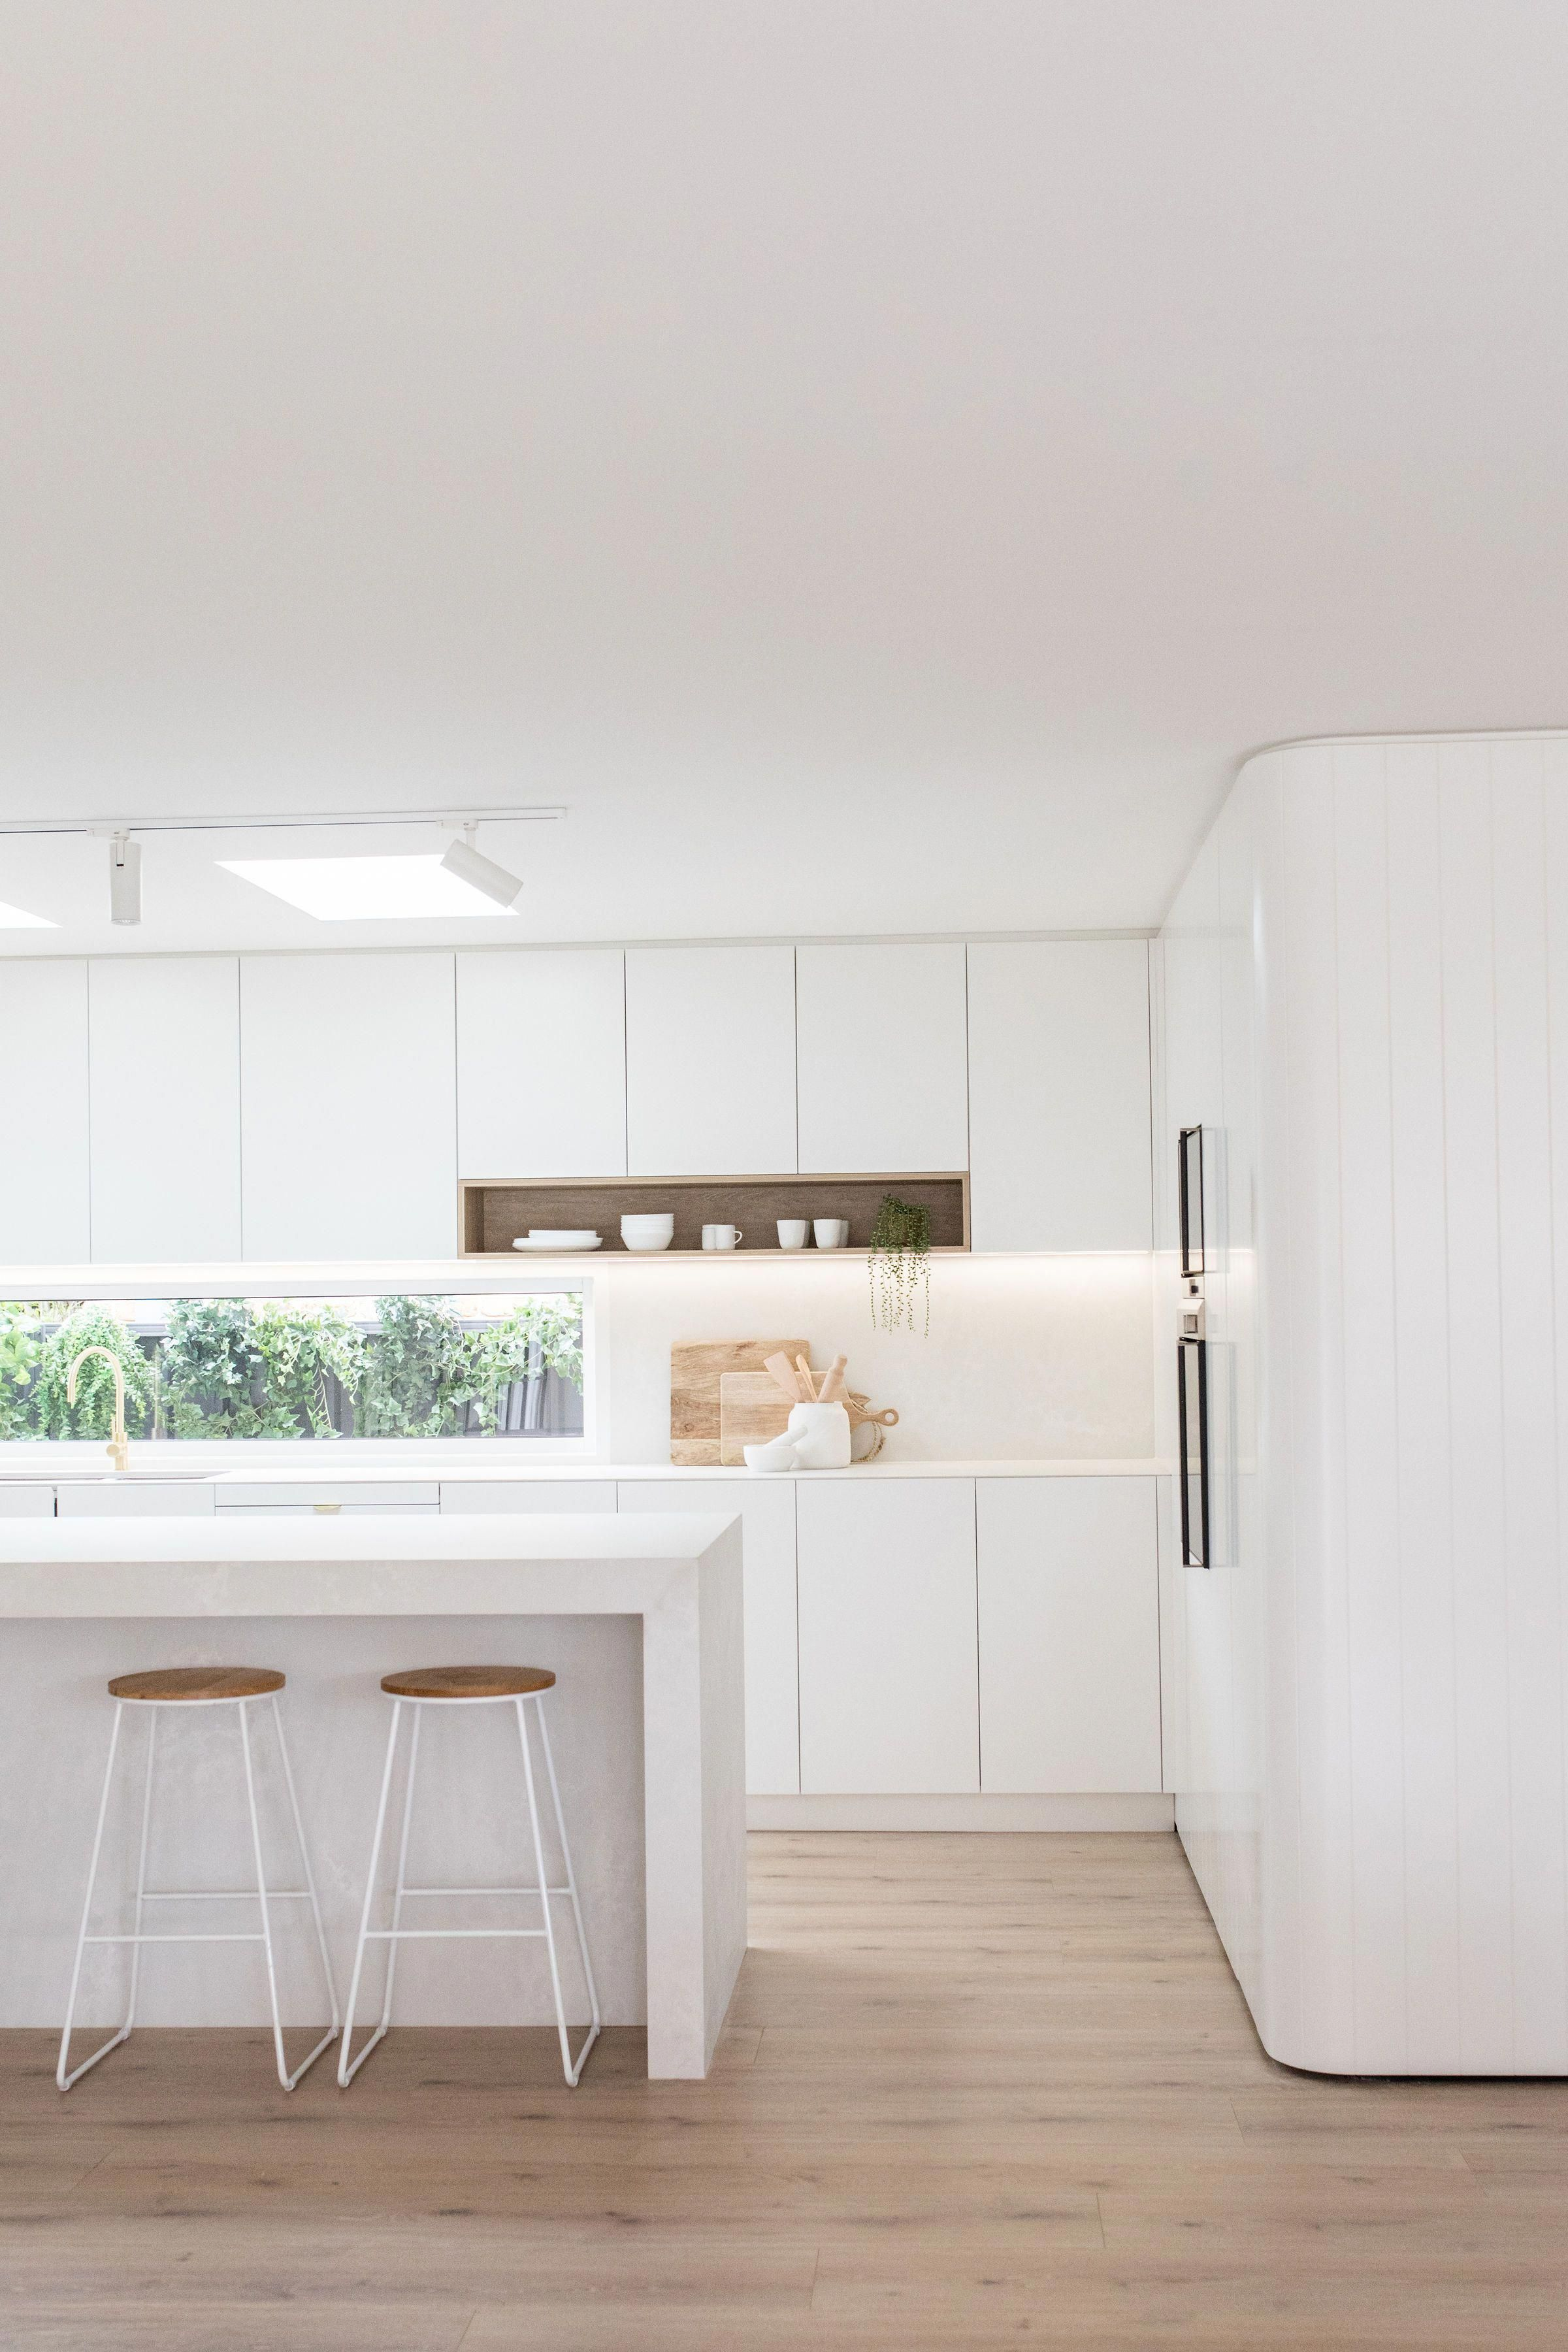 How Do You Renovate To Sell Kinwolf Projects Share Kitchen Reno Techniques To Help Maximise Your Retu In 2020 Modern Kitchen Design Home Kitchens Kitchen Design Small